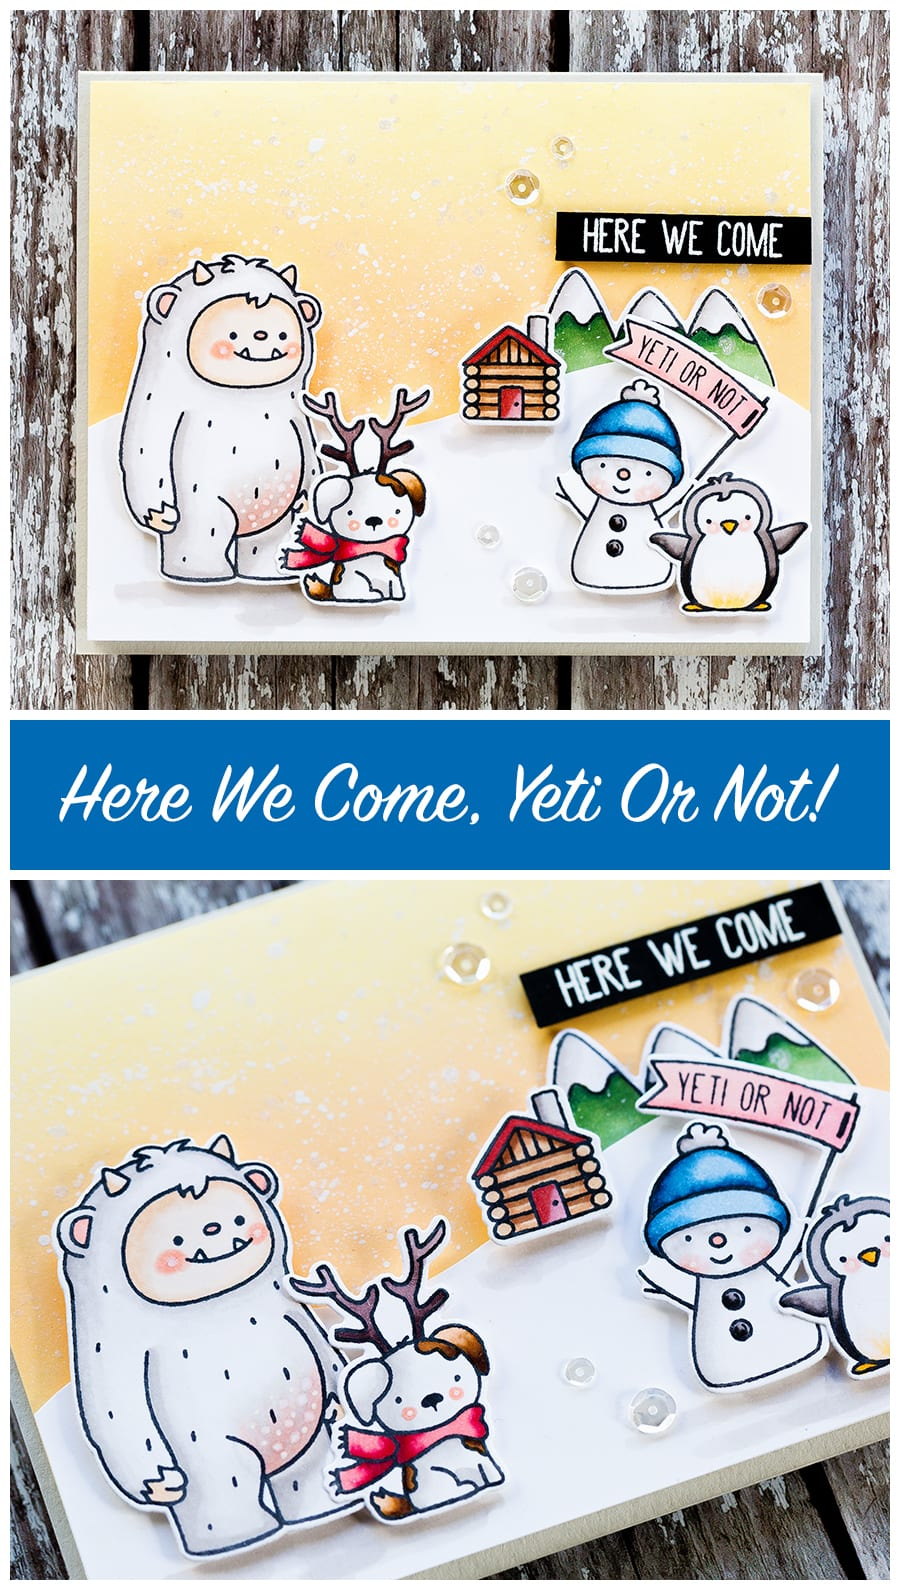 Here we come, yeti or not! Handmade holiday card by Debby Hughes using the new Get Yeti set from Neat & Tangled. Find out more here: http://limedoodledesign.com/2017/10/yeti-or-not-here-we-come-giveaway/